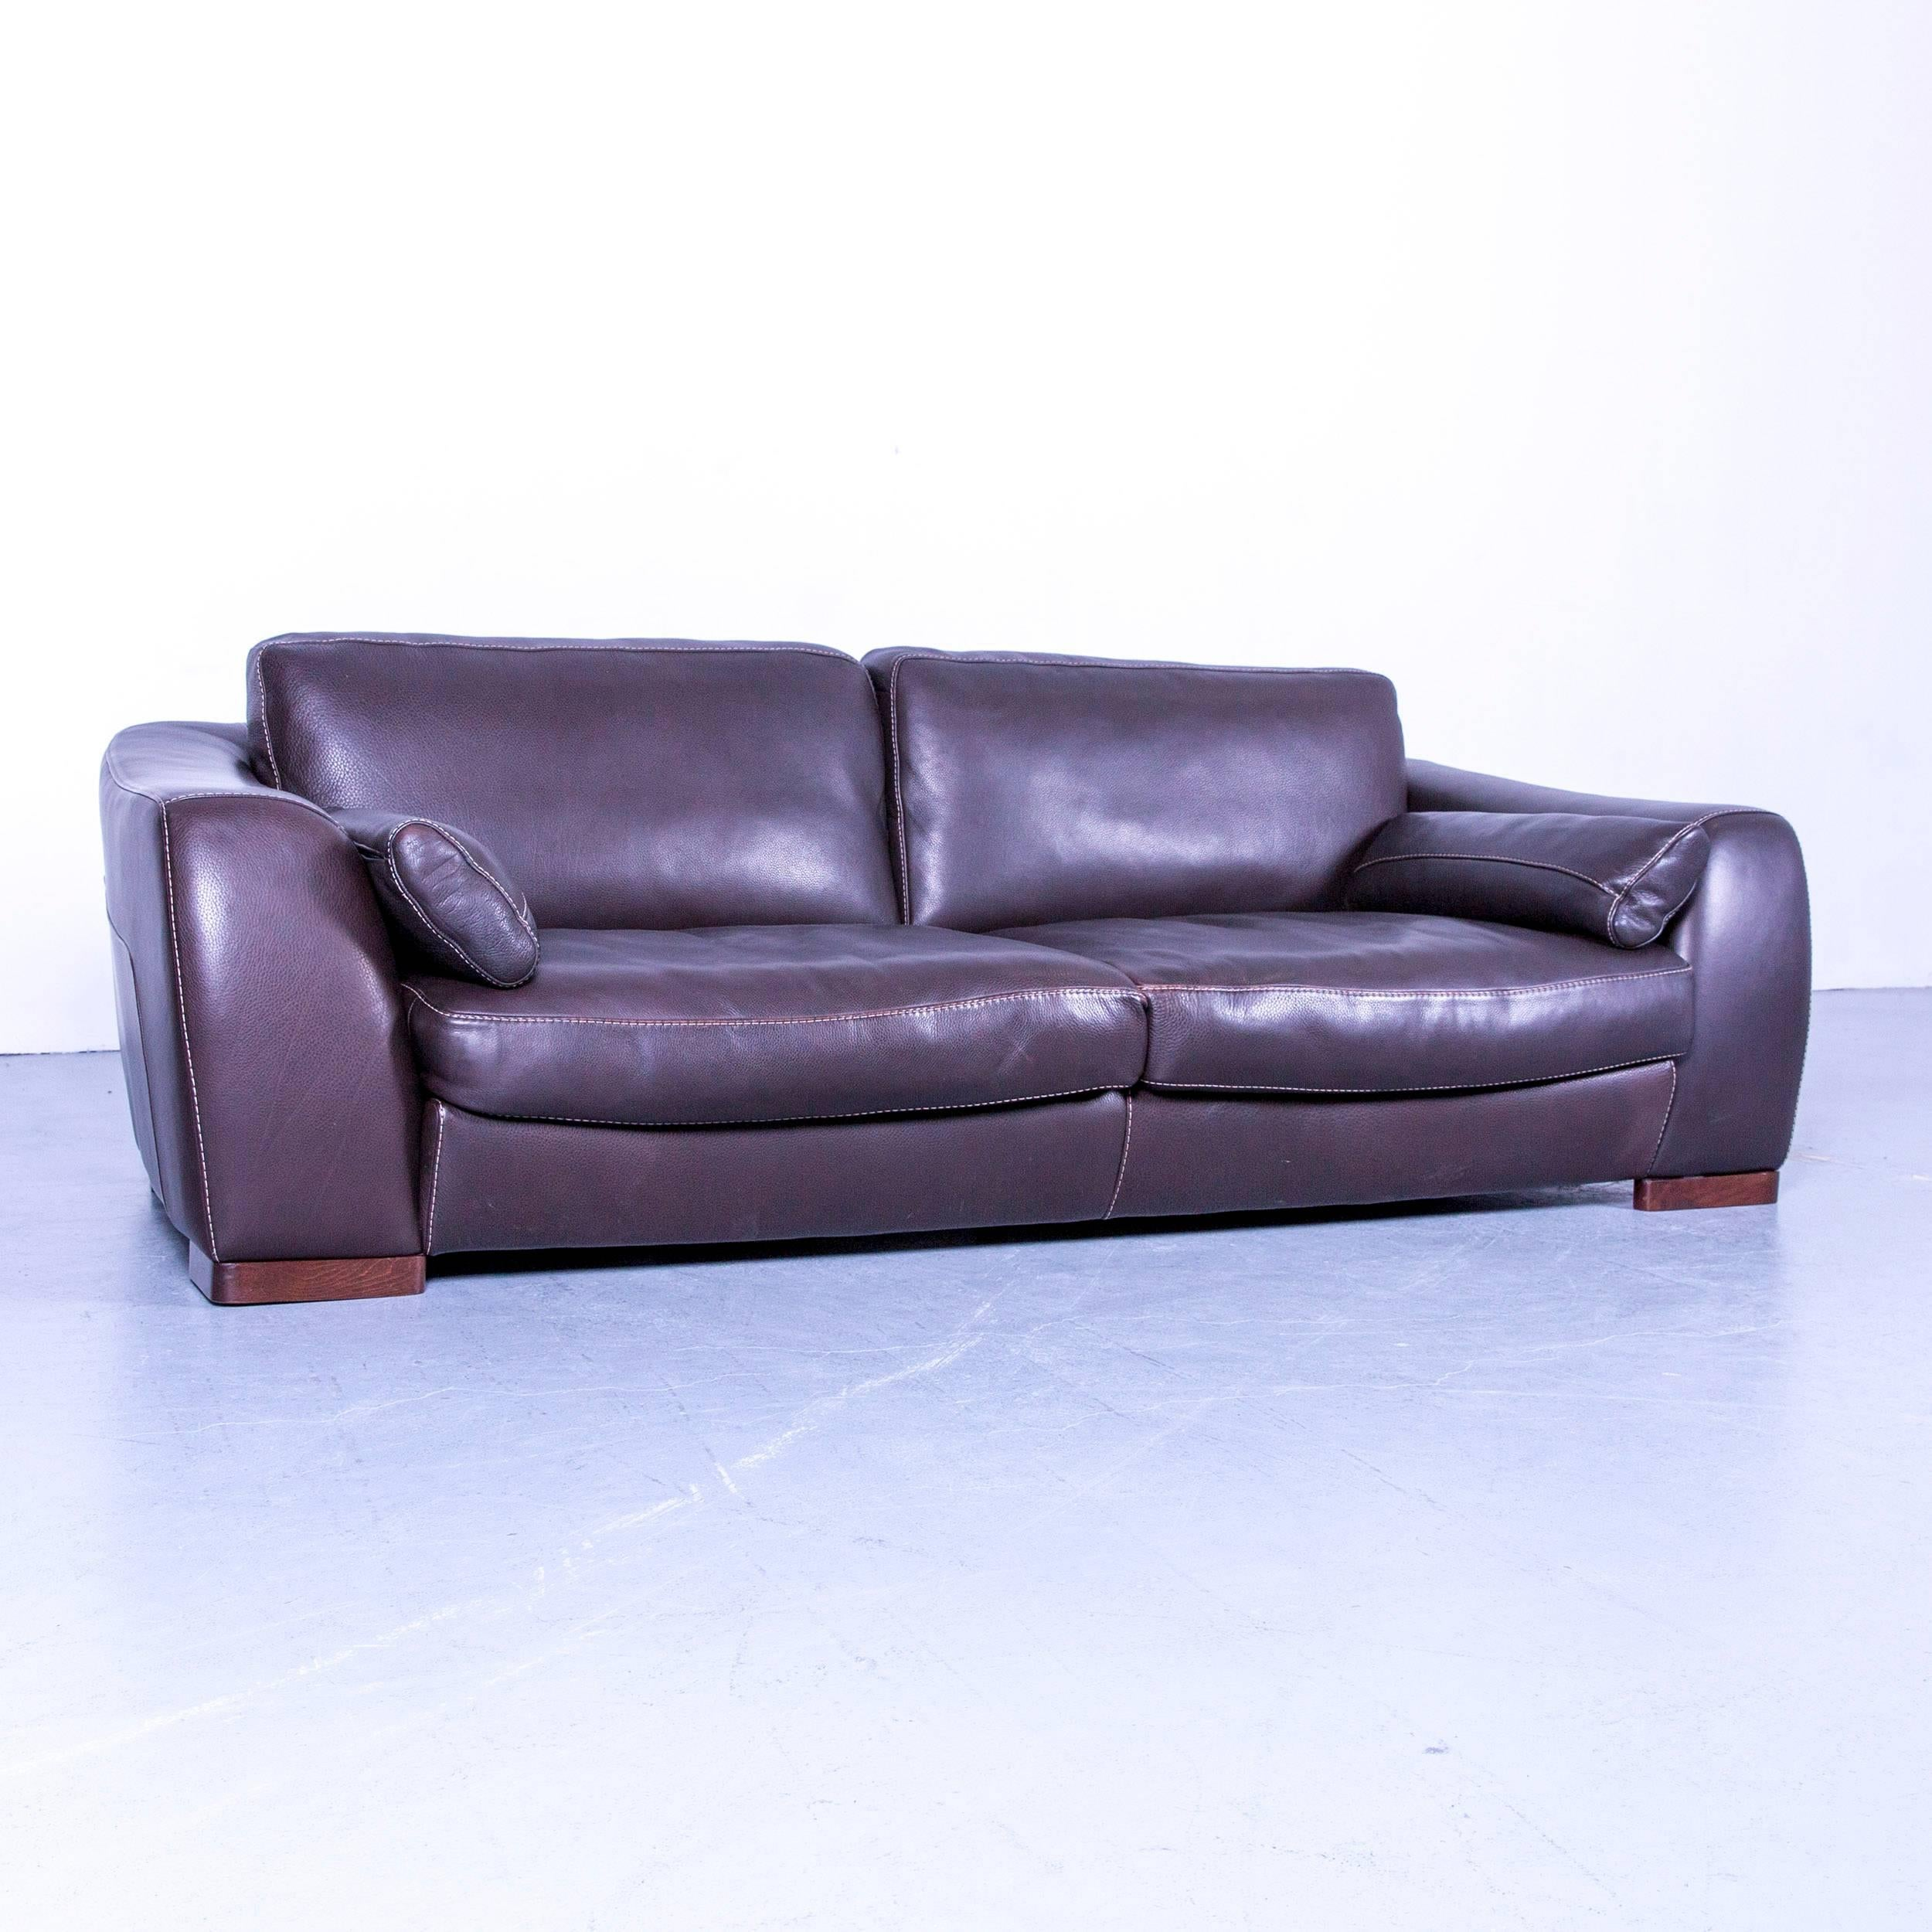 Genial Incanto Designer Sofa Brown Three Seater Couch With Pillows Leather At  1stdibs